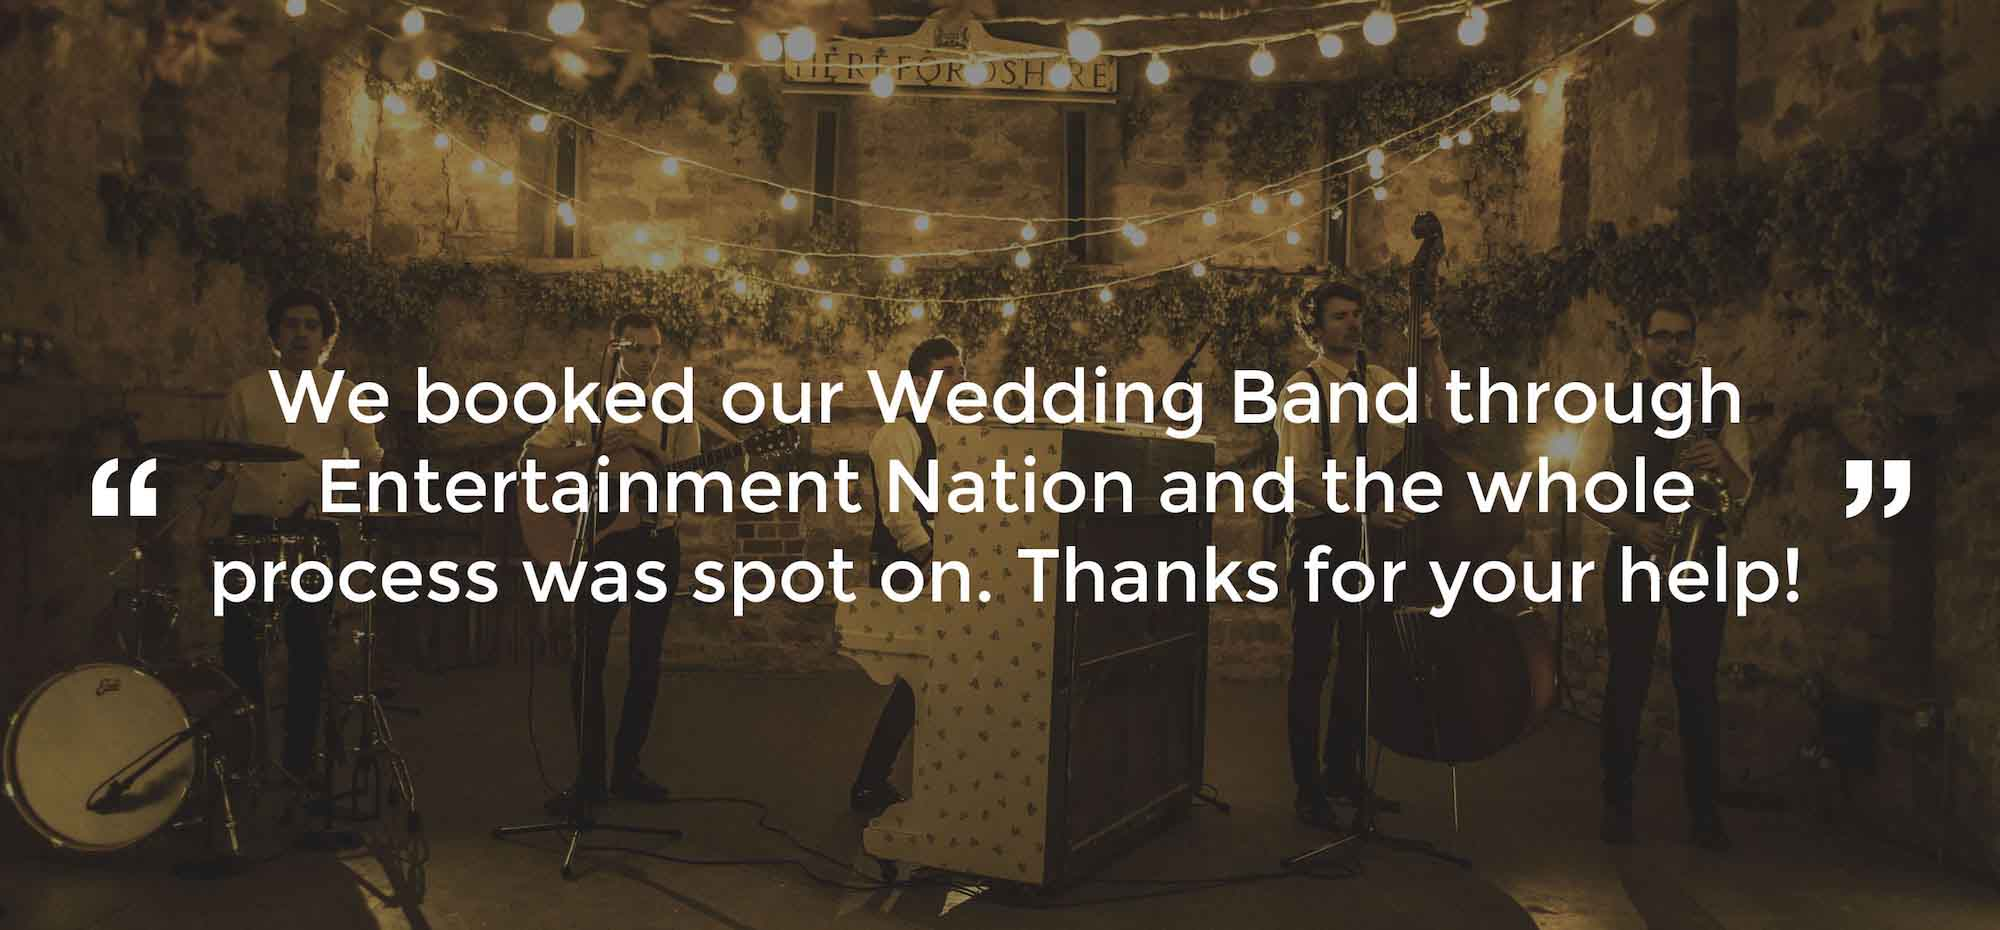 Client Review of a Wedding Band Hertfordshire